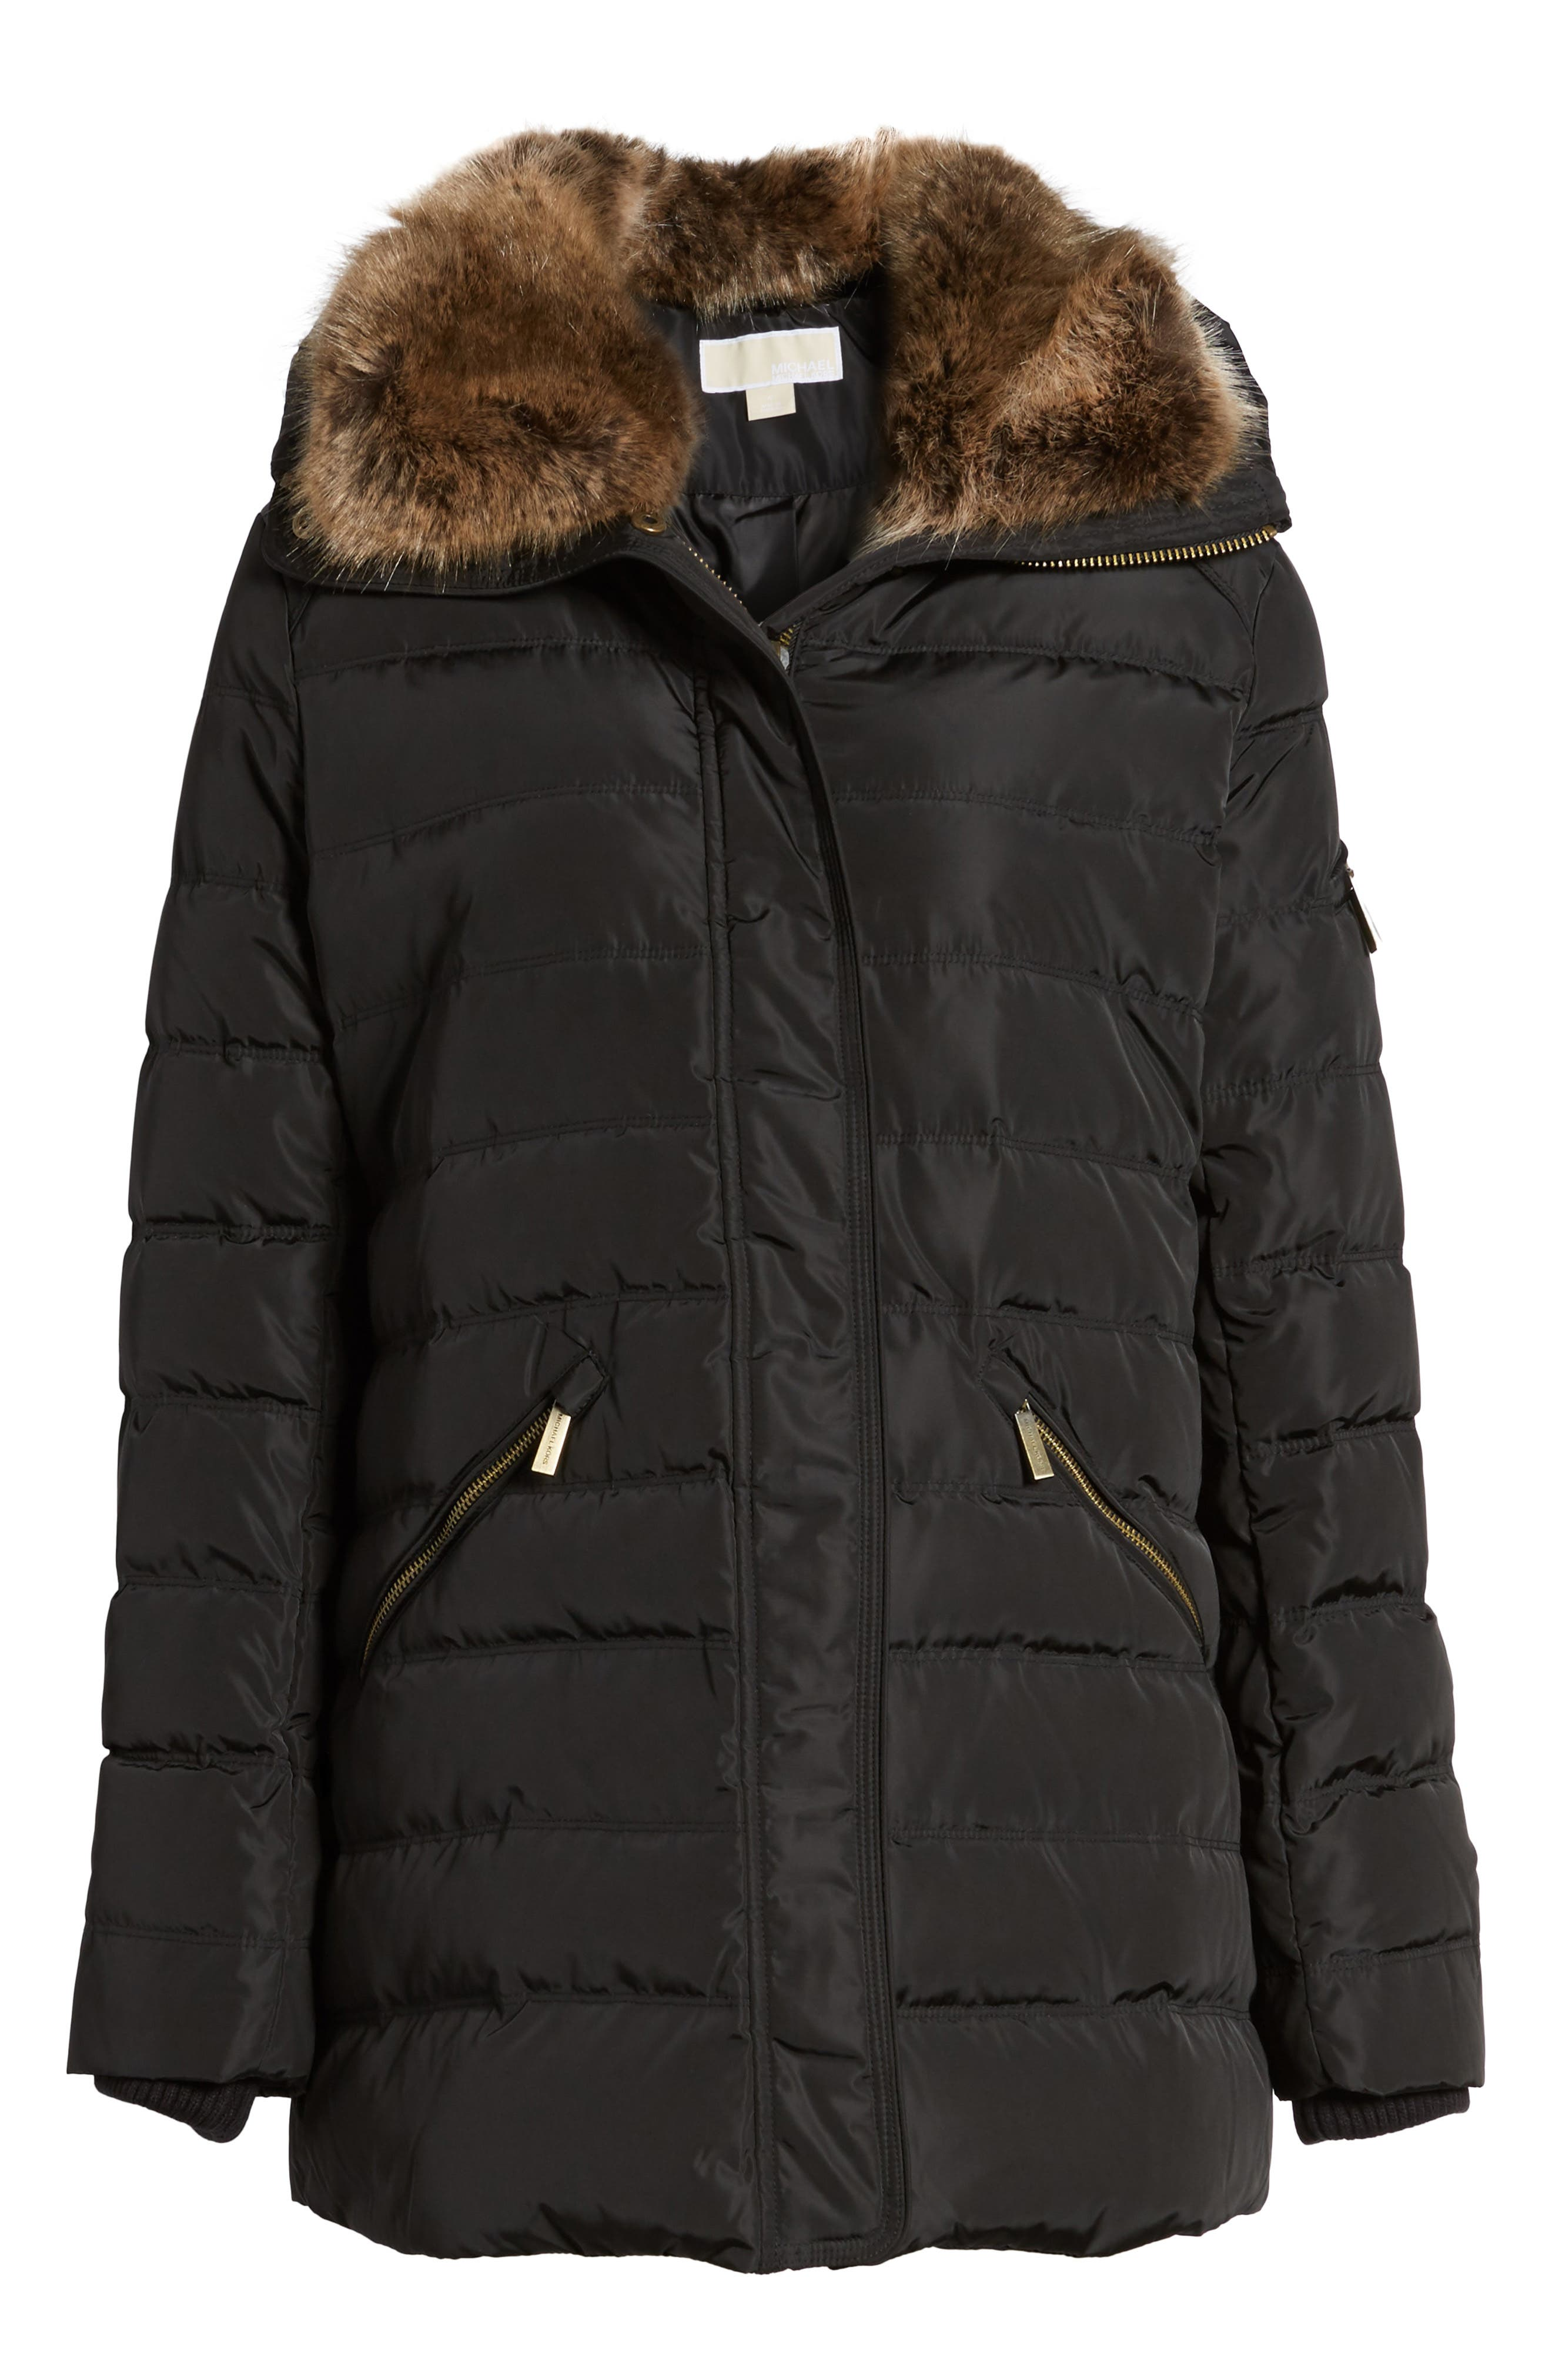 Hooded Coat with Faux Fur Trim,                         Main,                         color, Black